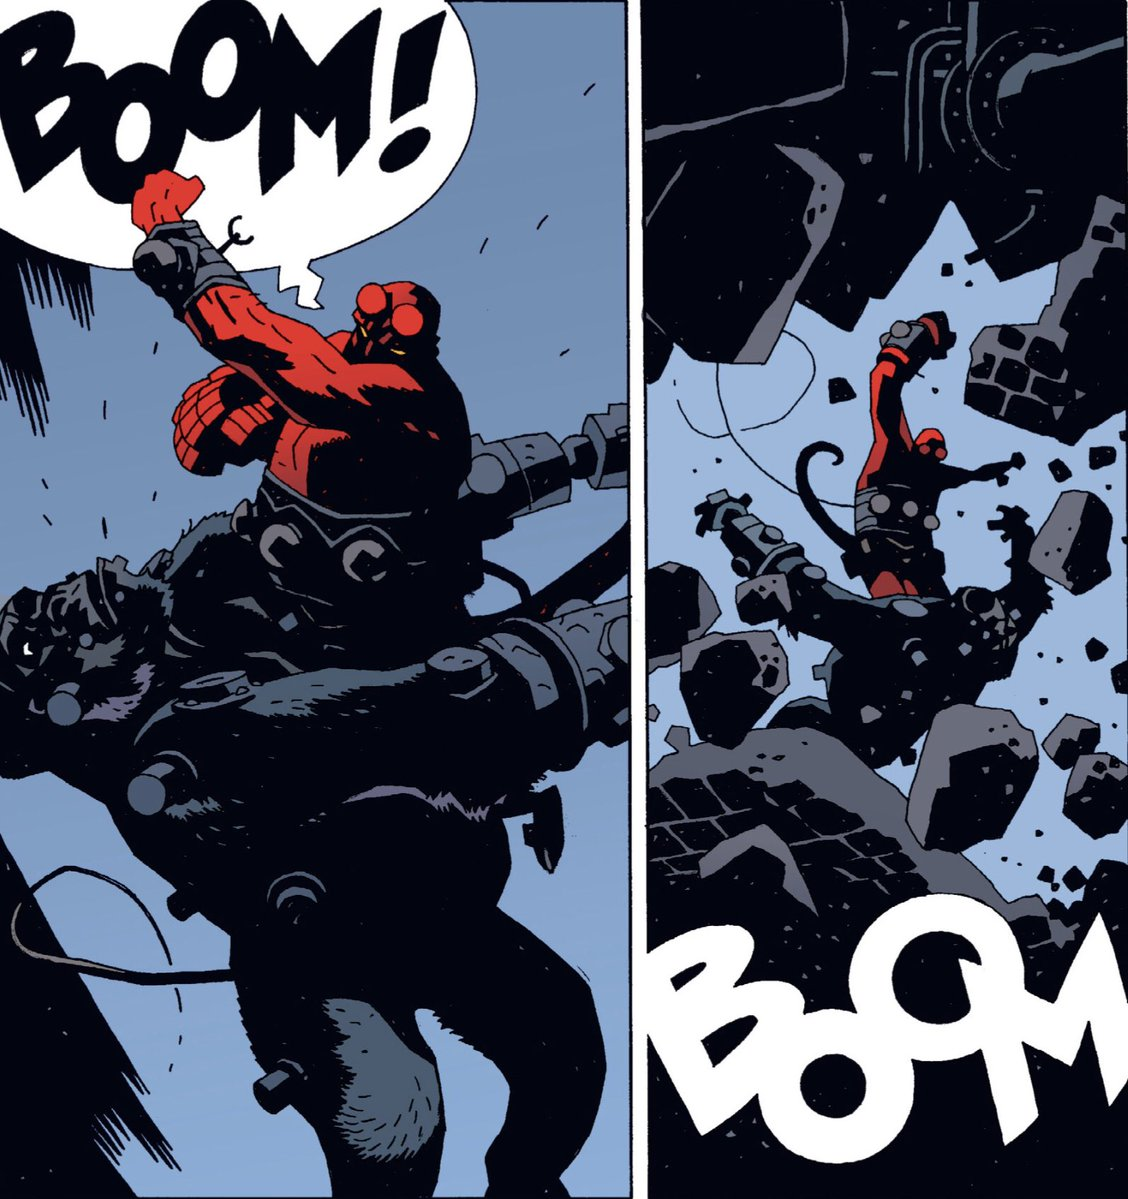 Here's hoping Hellboy will find himself punching his way through some new anthology stories in 2019.